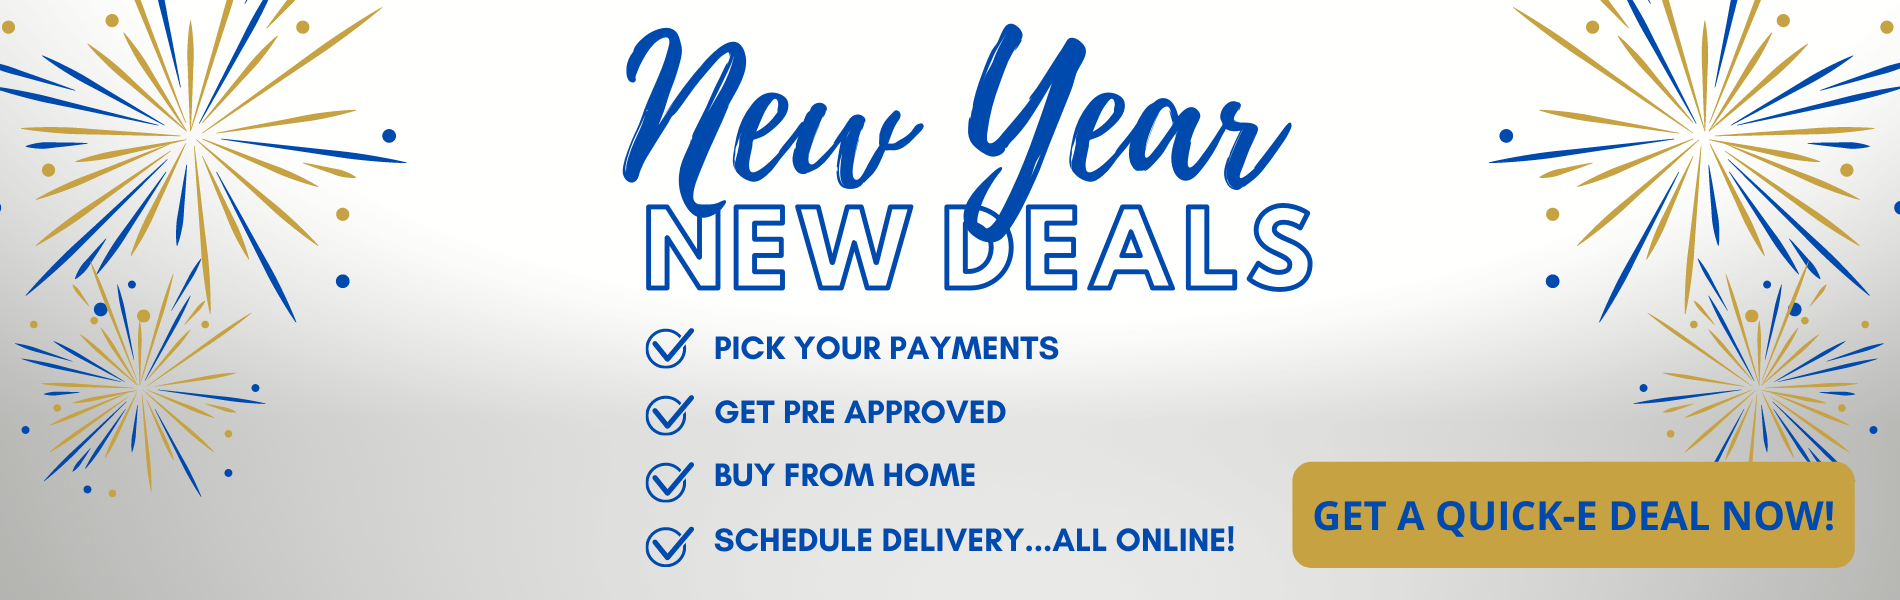 New year home page banner